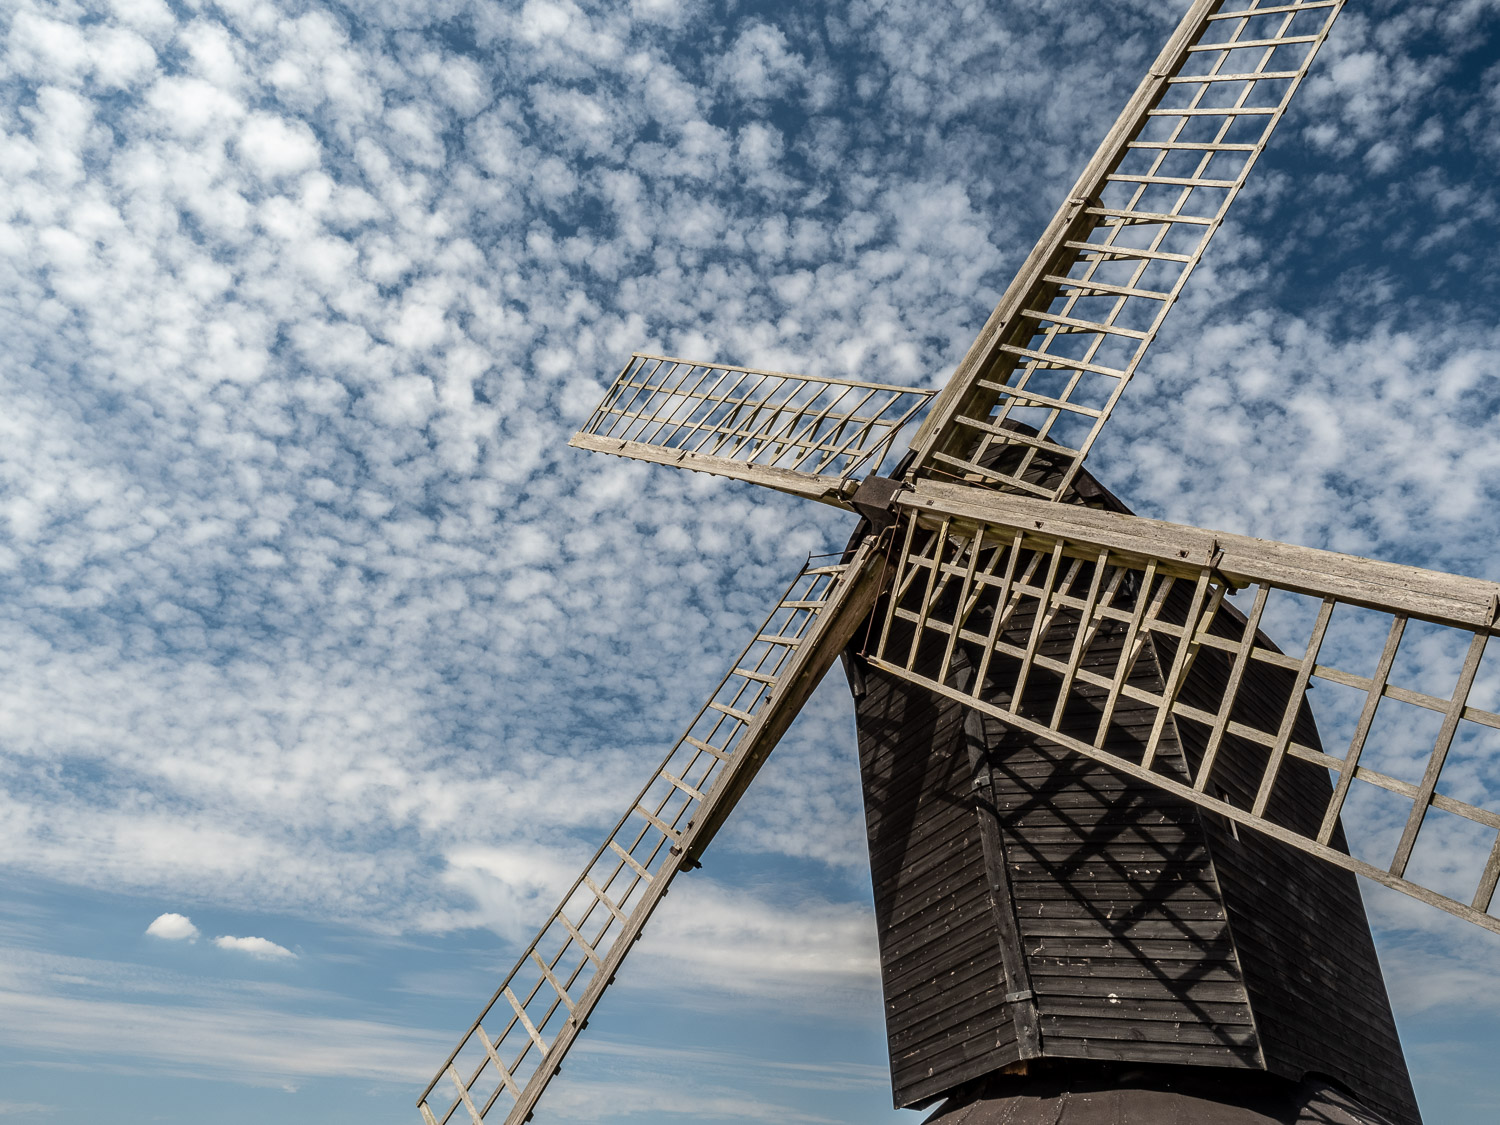 A Photograph Looking Up At Pitstone Windmill In Front Of A Blue Sky With Lots Of Small, White Clouds.